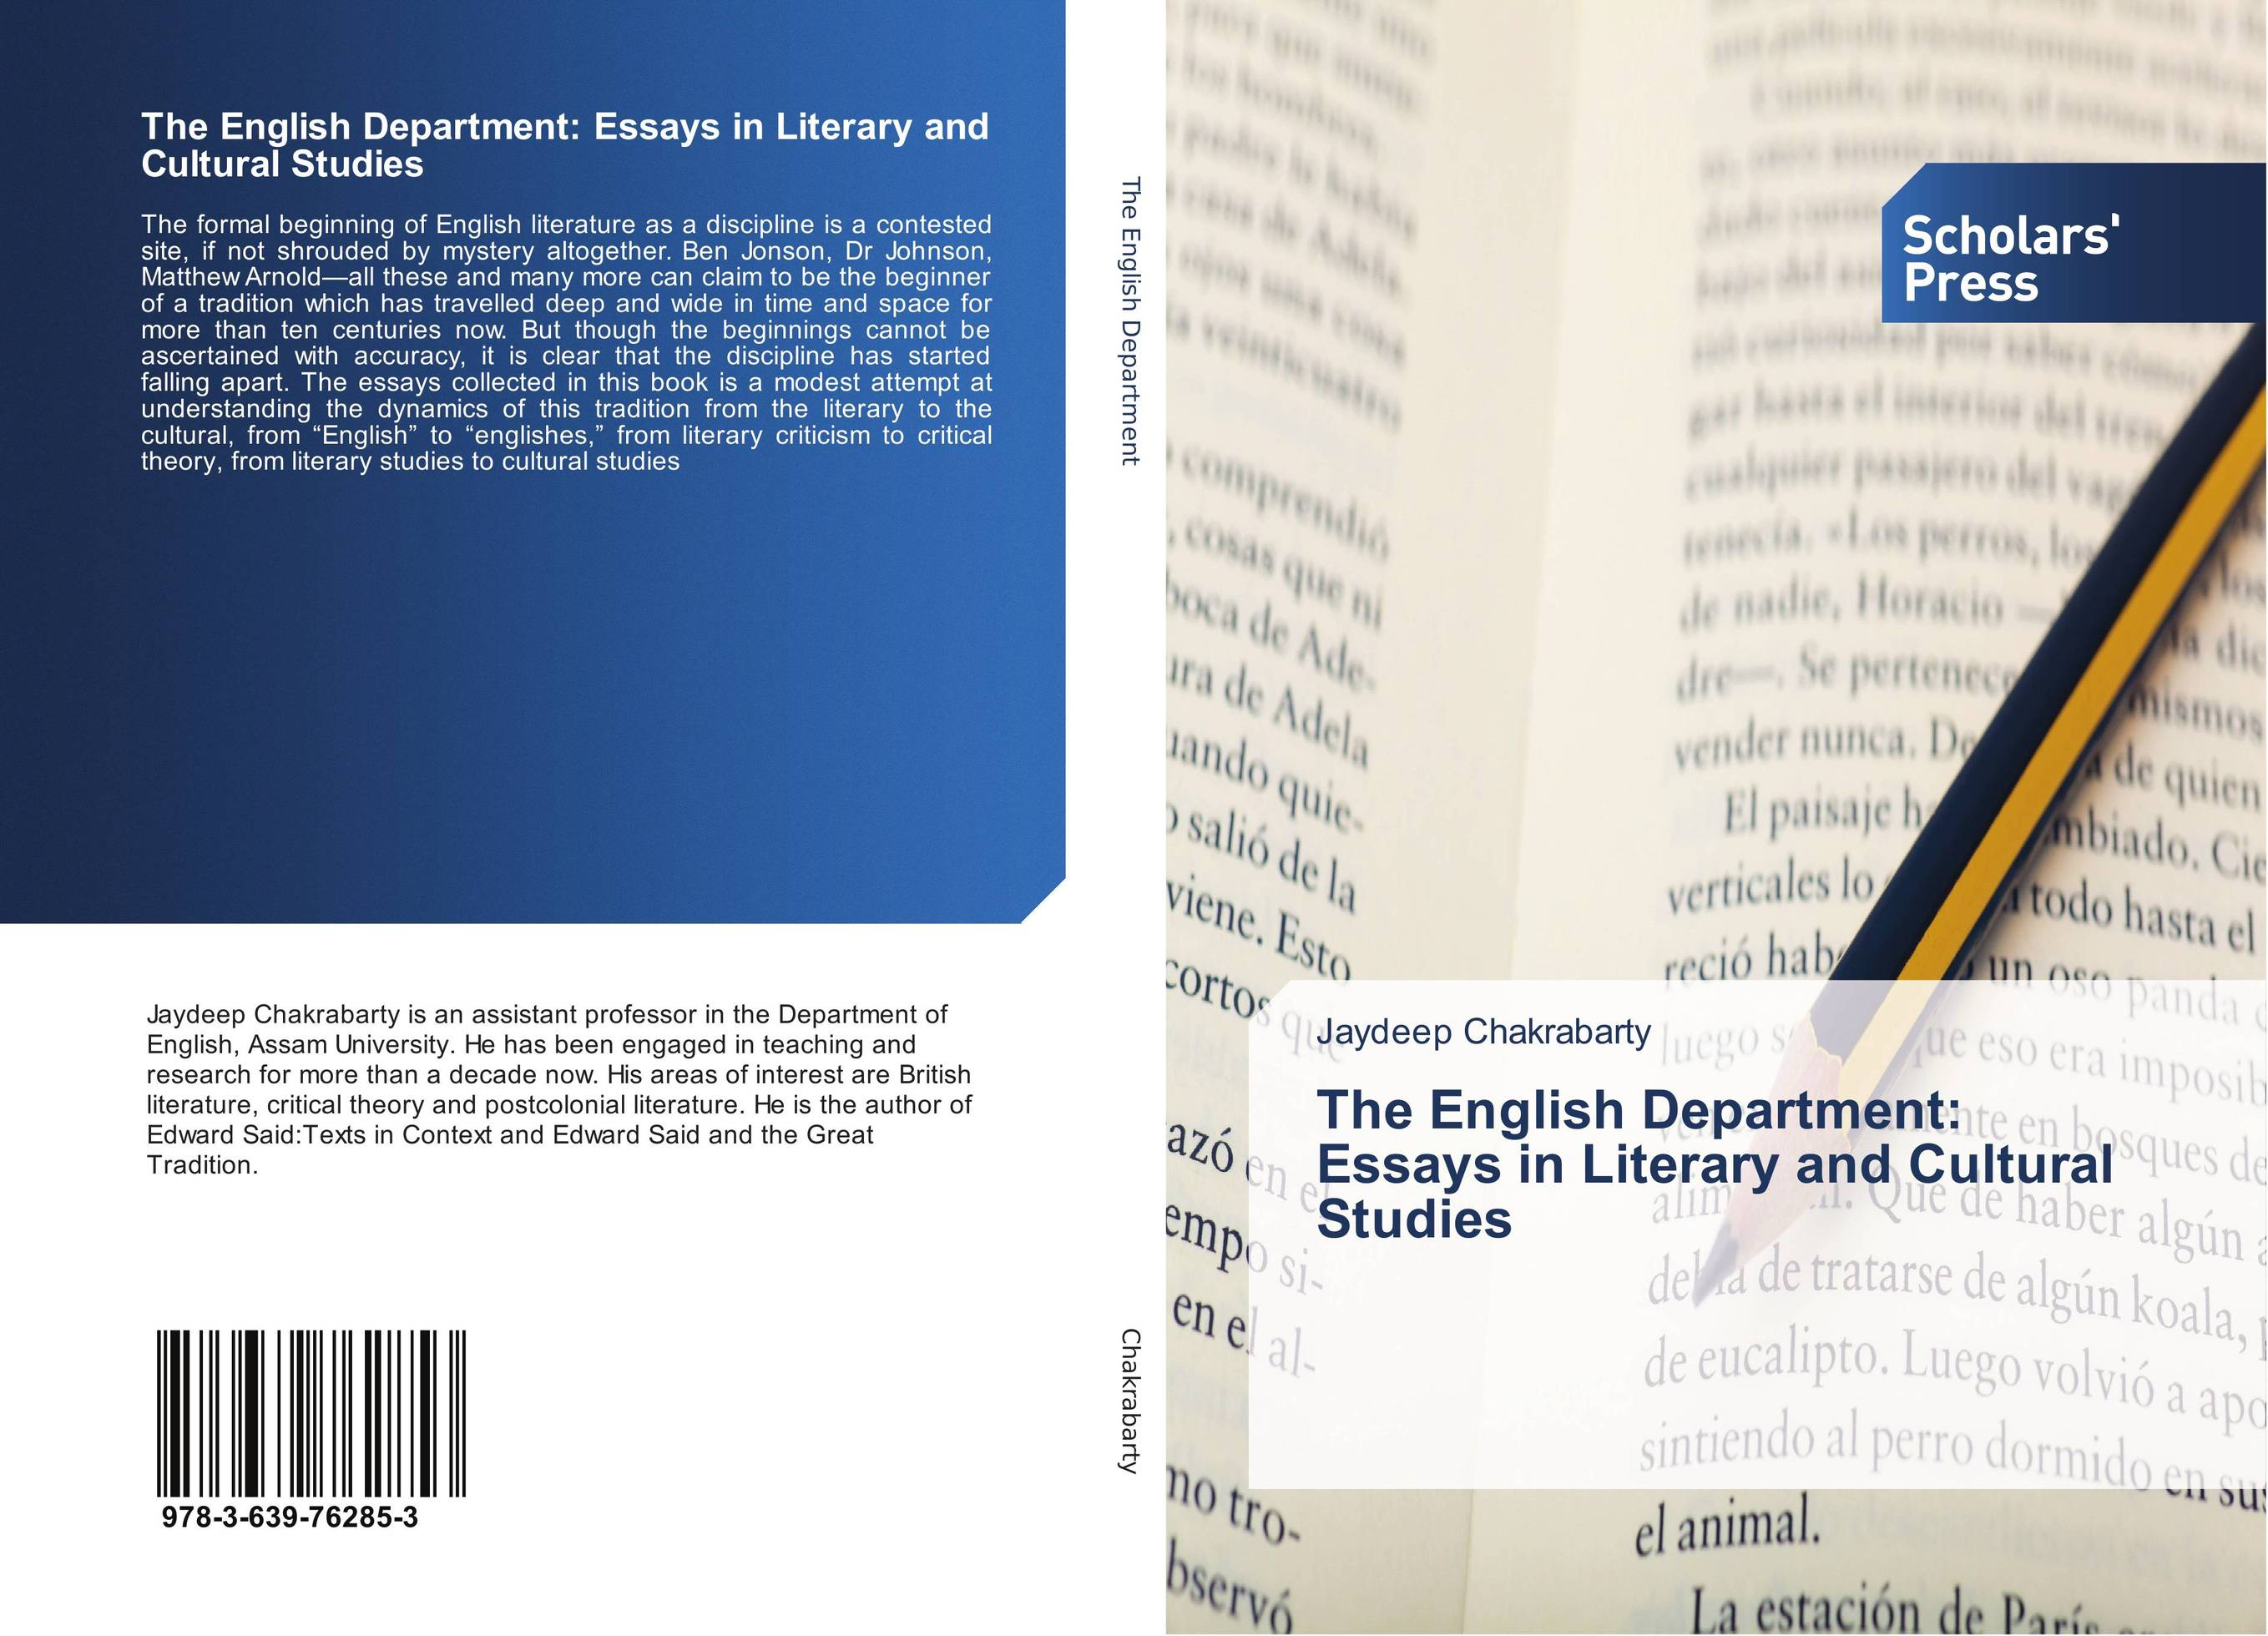 The English Department: Essays in Literary and Cultural Studies